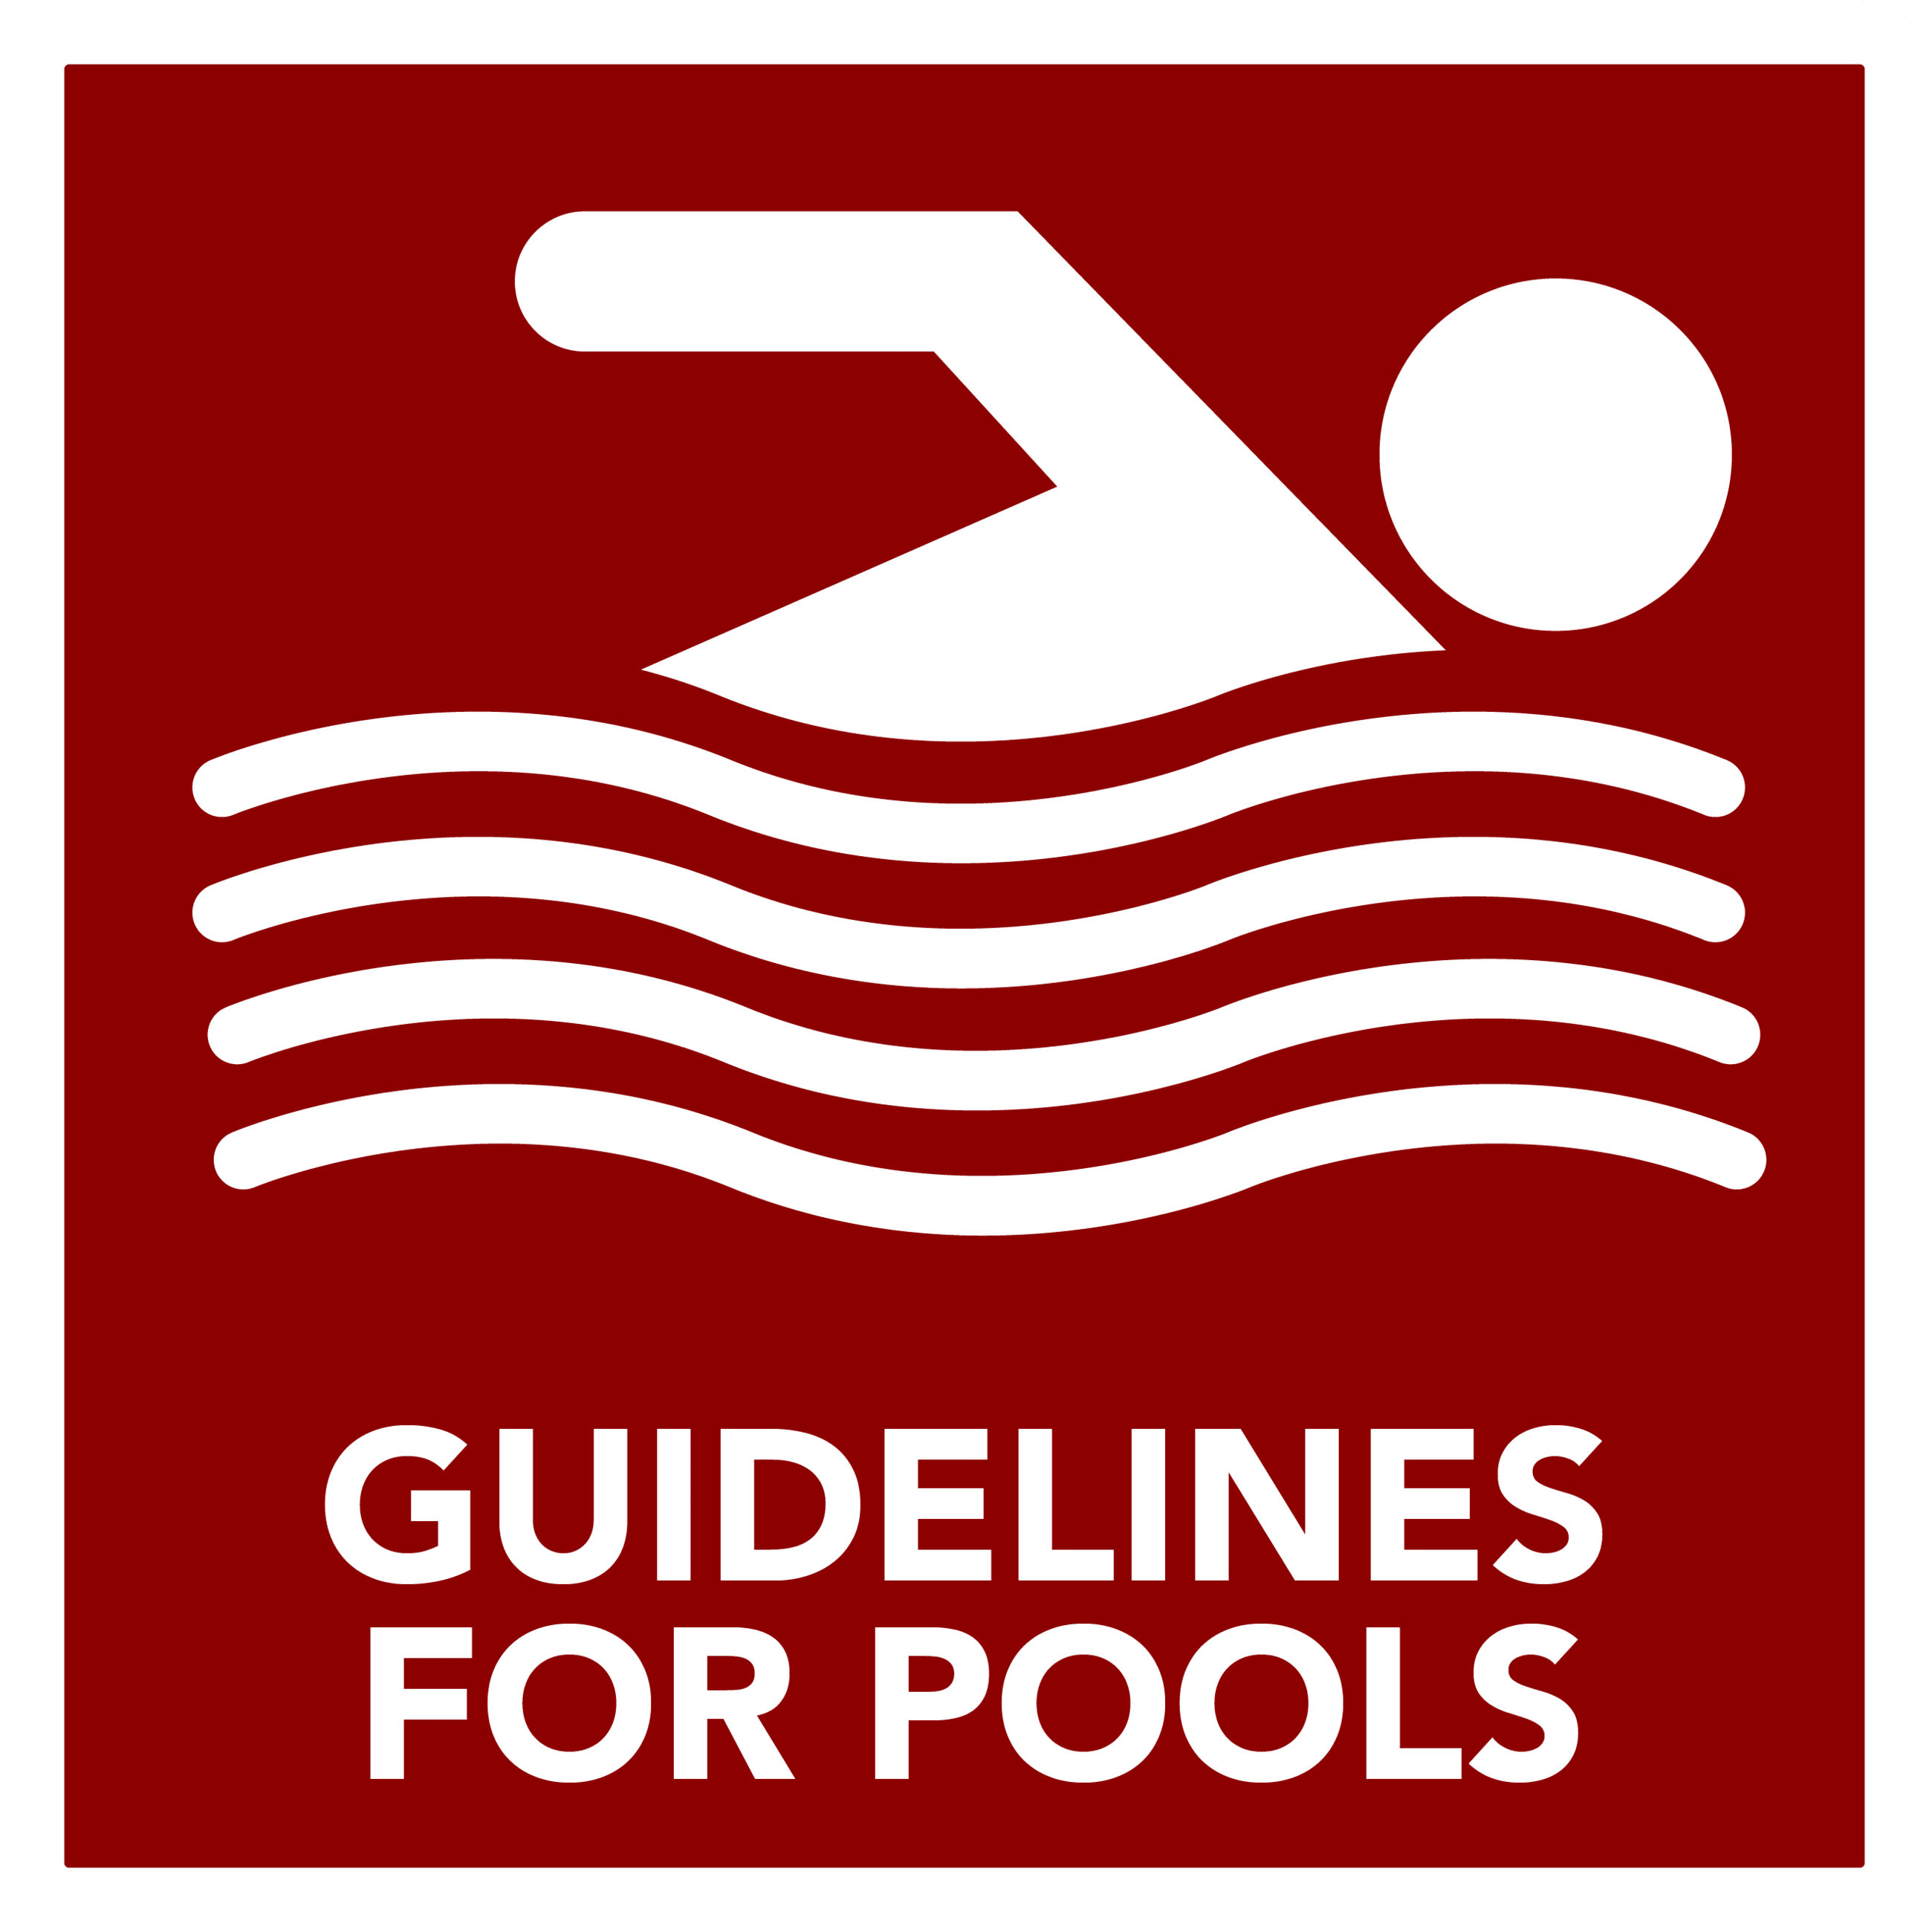 Guidelines for Pools